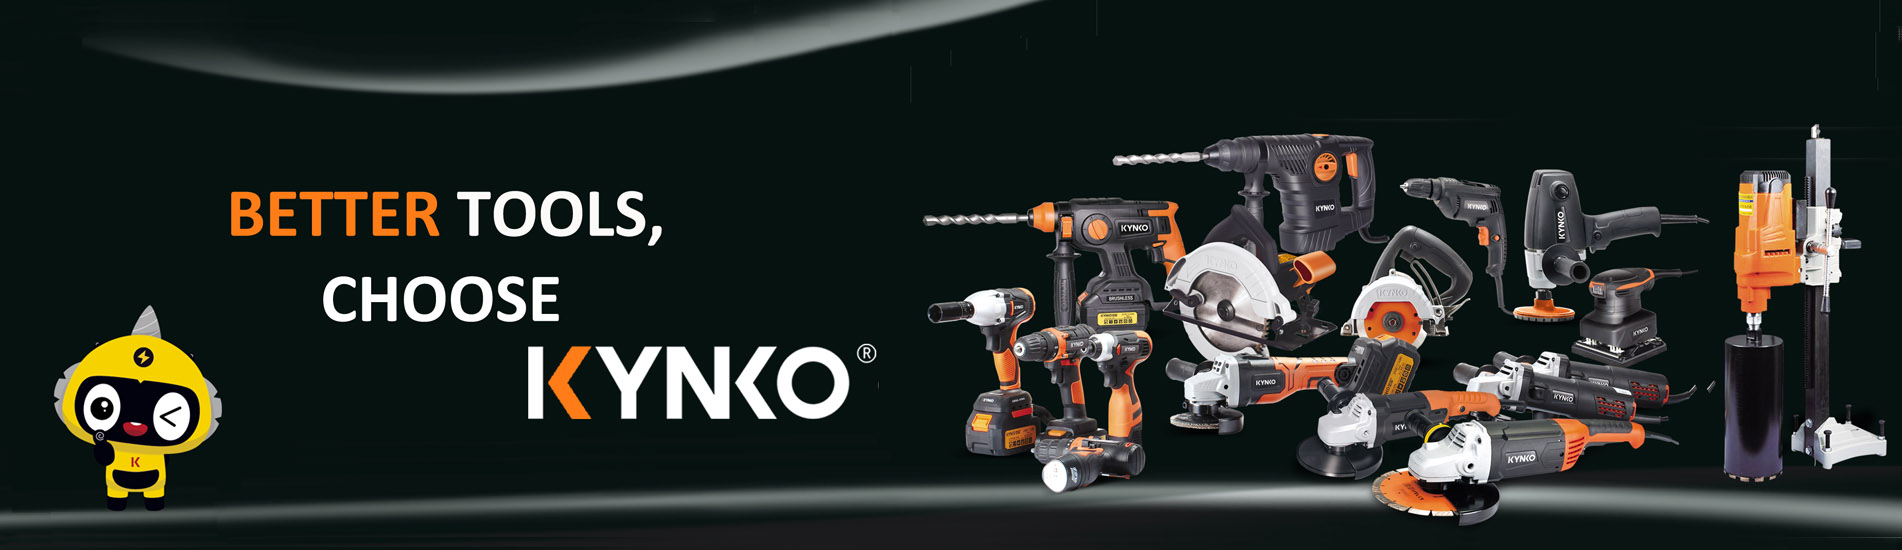 KYNKO Power Tools products